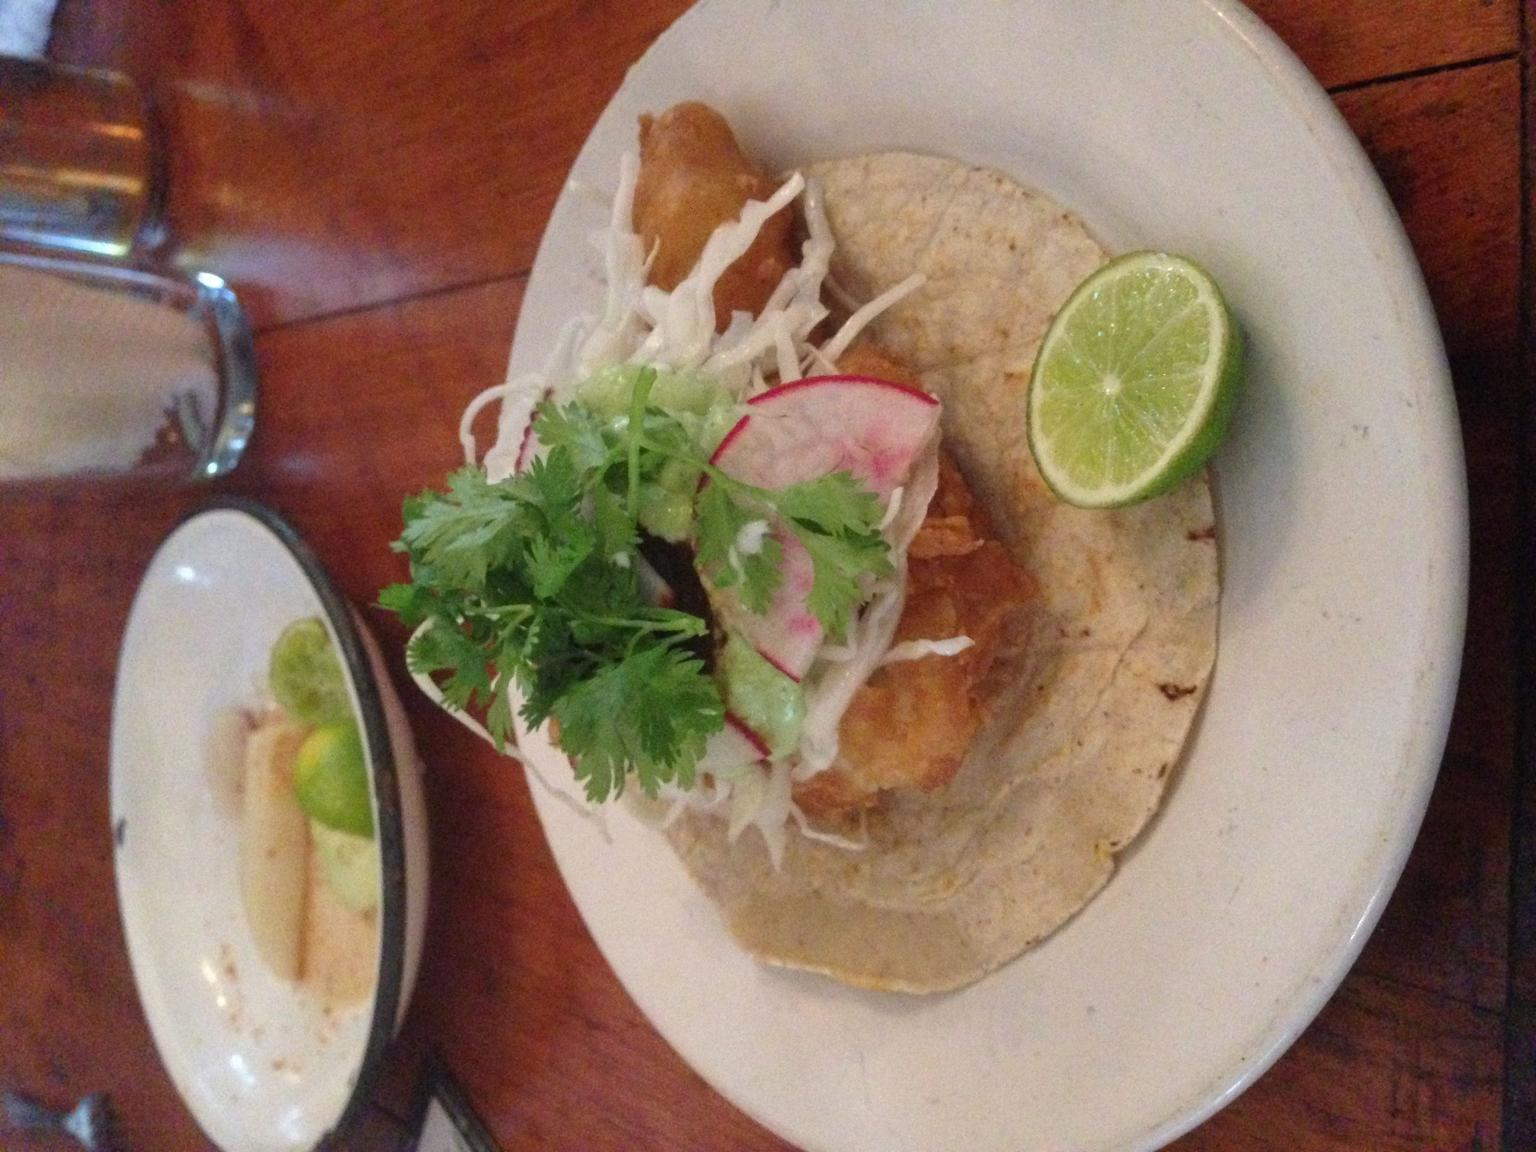 Food and Mixology Tour: Tequila, Tacos, and Mexican Cocktails